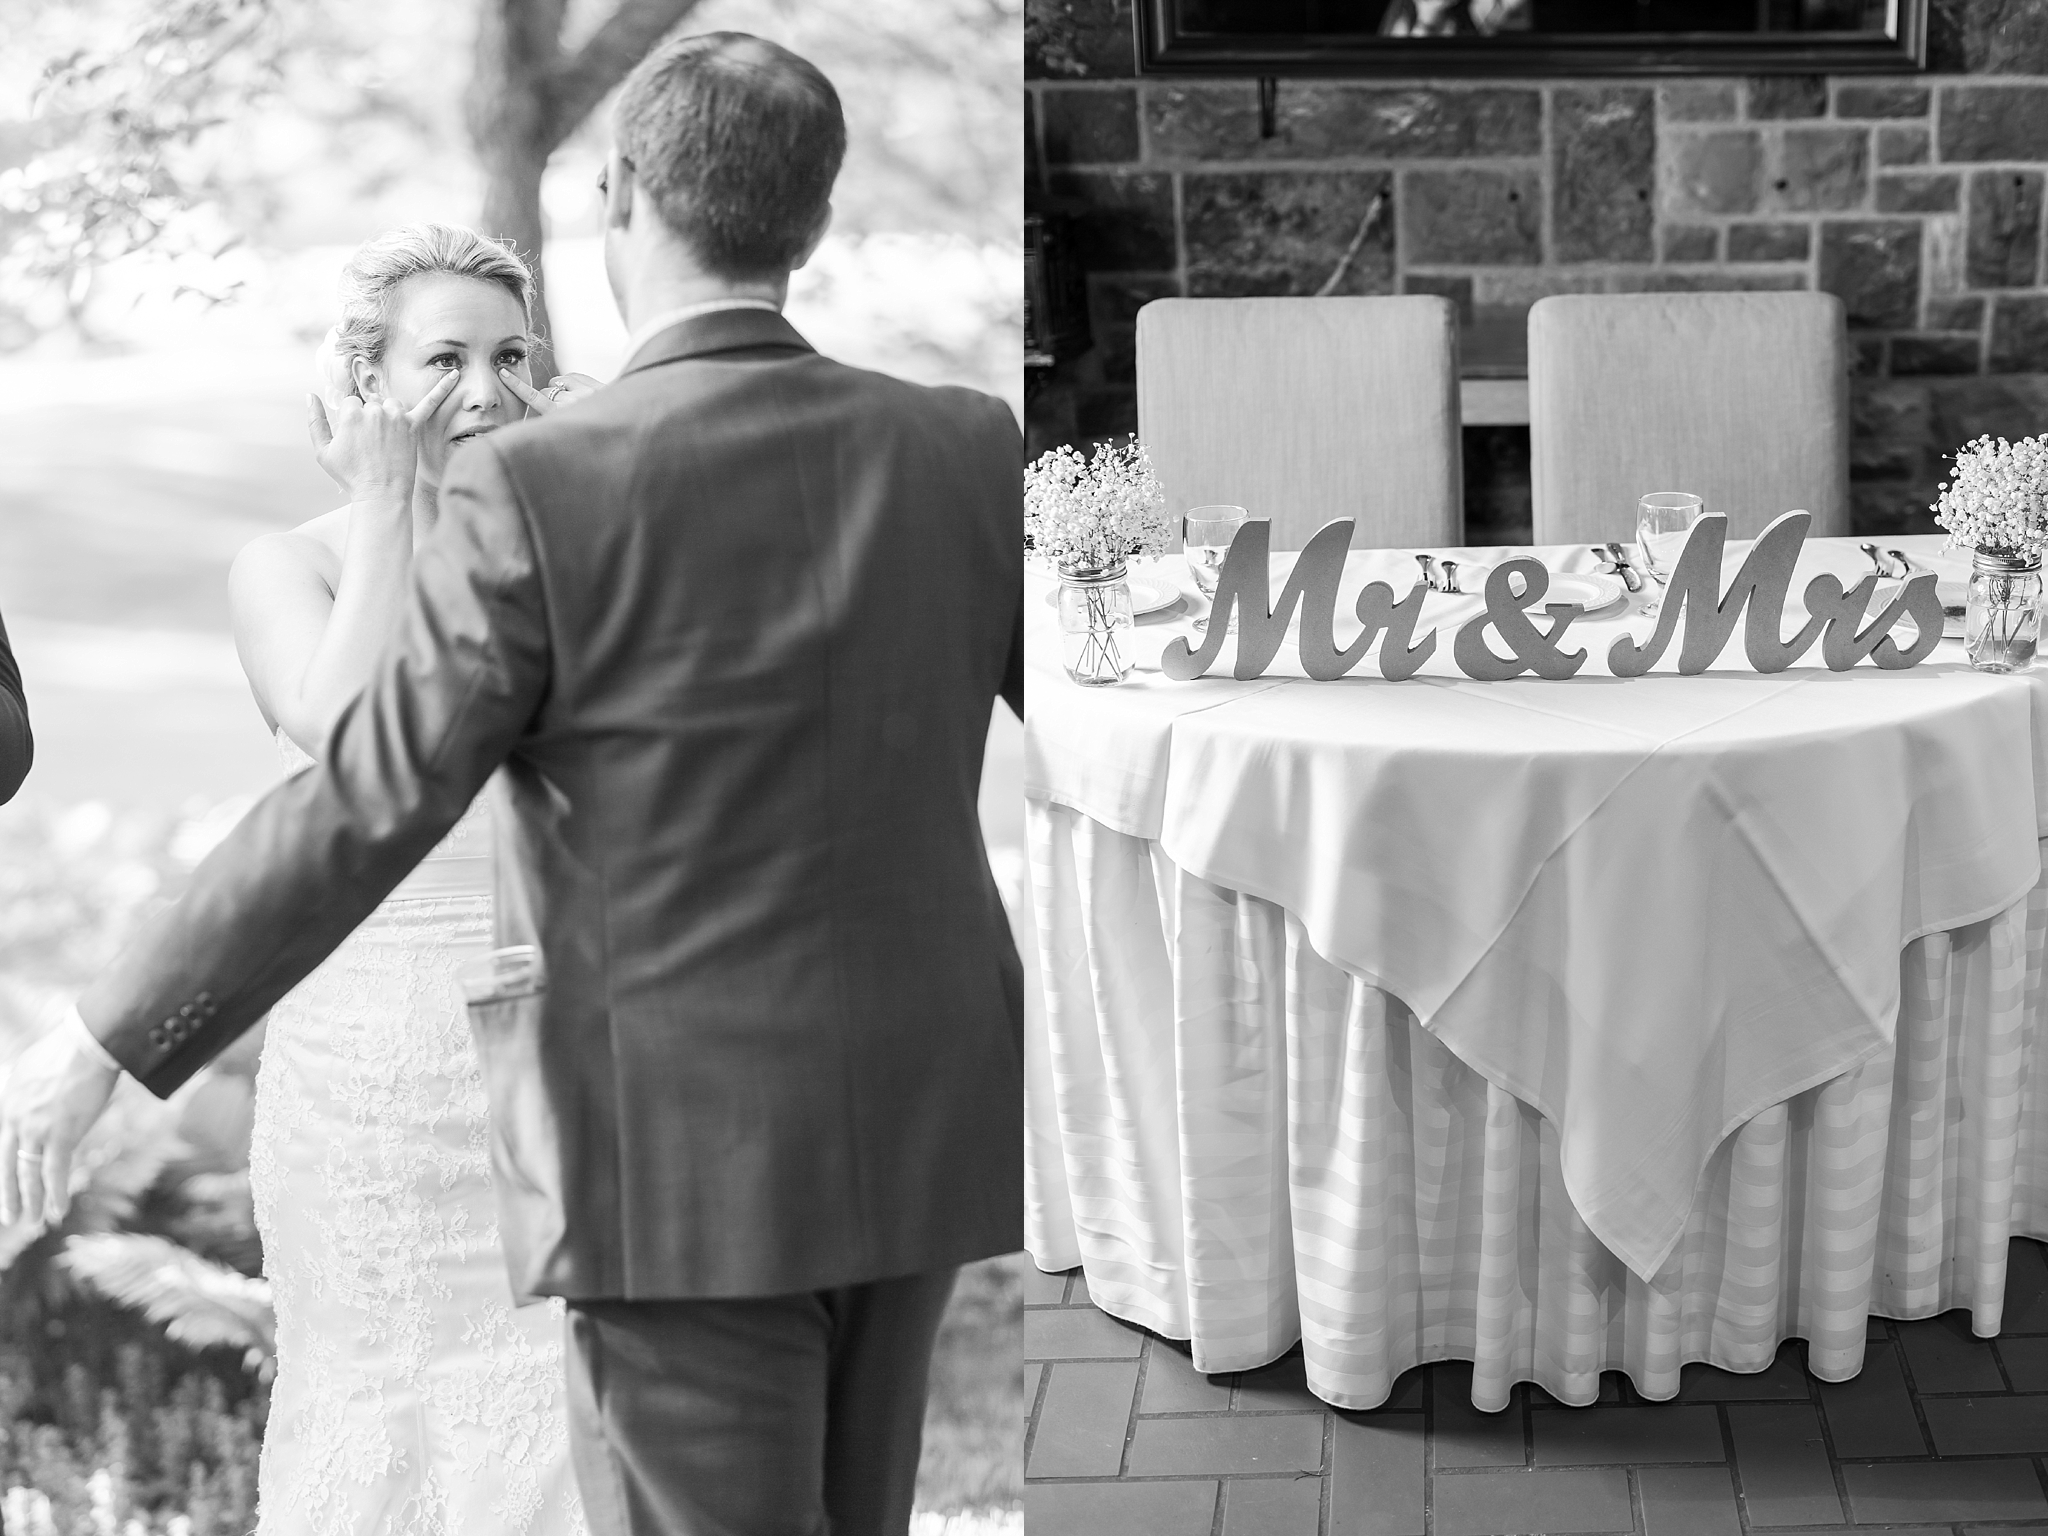 fun-candid-laid-back-wedding-photos-at-wellers-carriage-house-in-saline-michigan-and-at-the-eagle-crest-golf-resort-by-courtney-carolyn-photography_0078.jpg